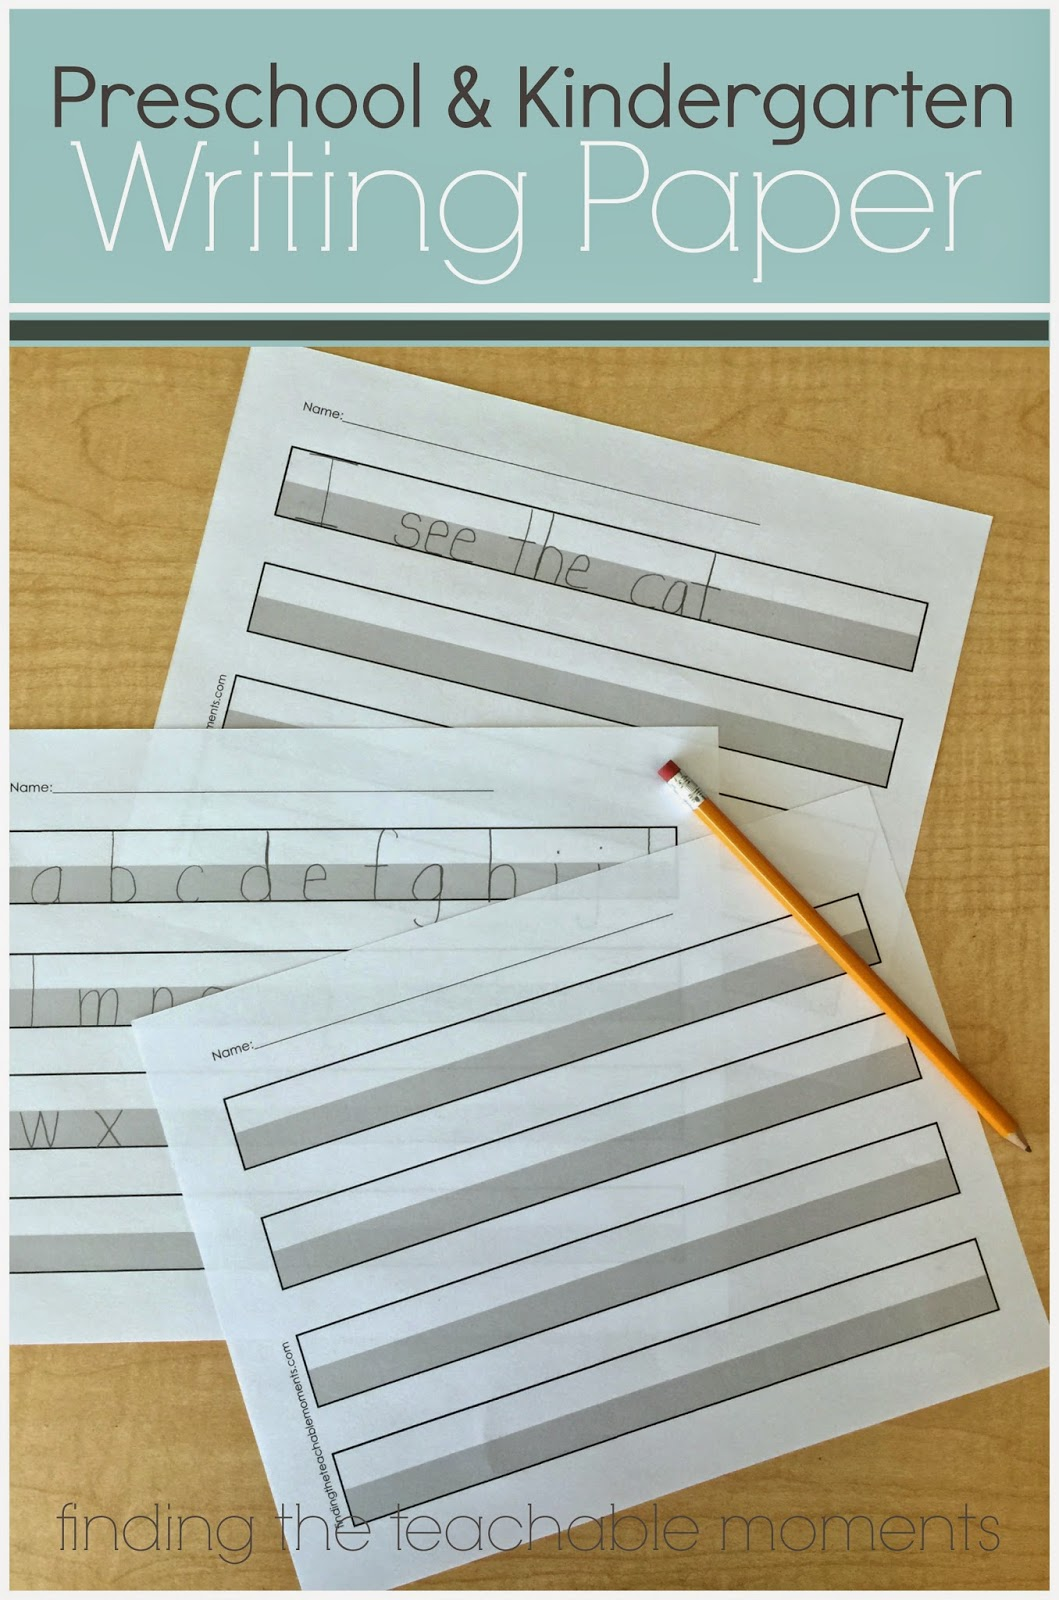 FREE printable handwriting paper for Preschool or Kindergarten